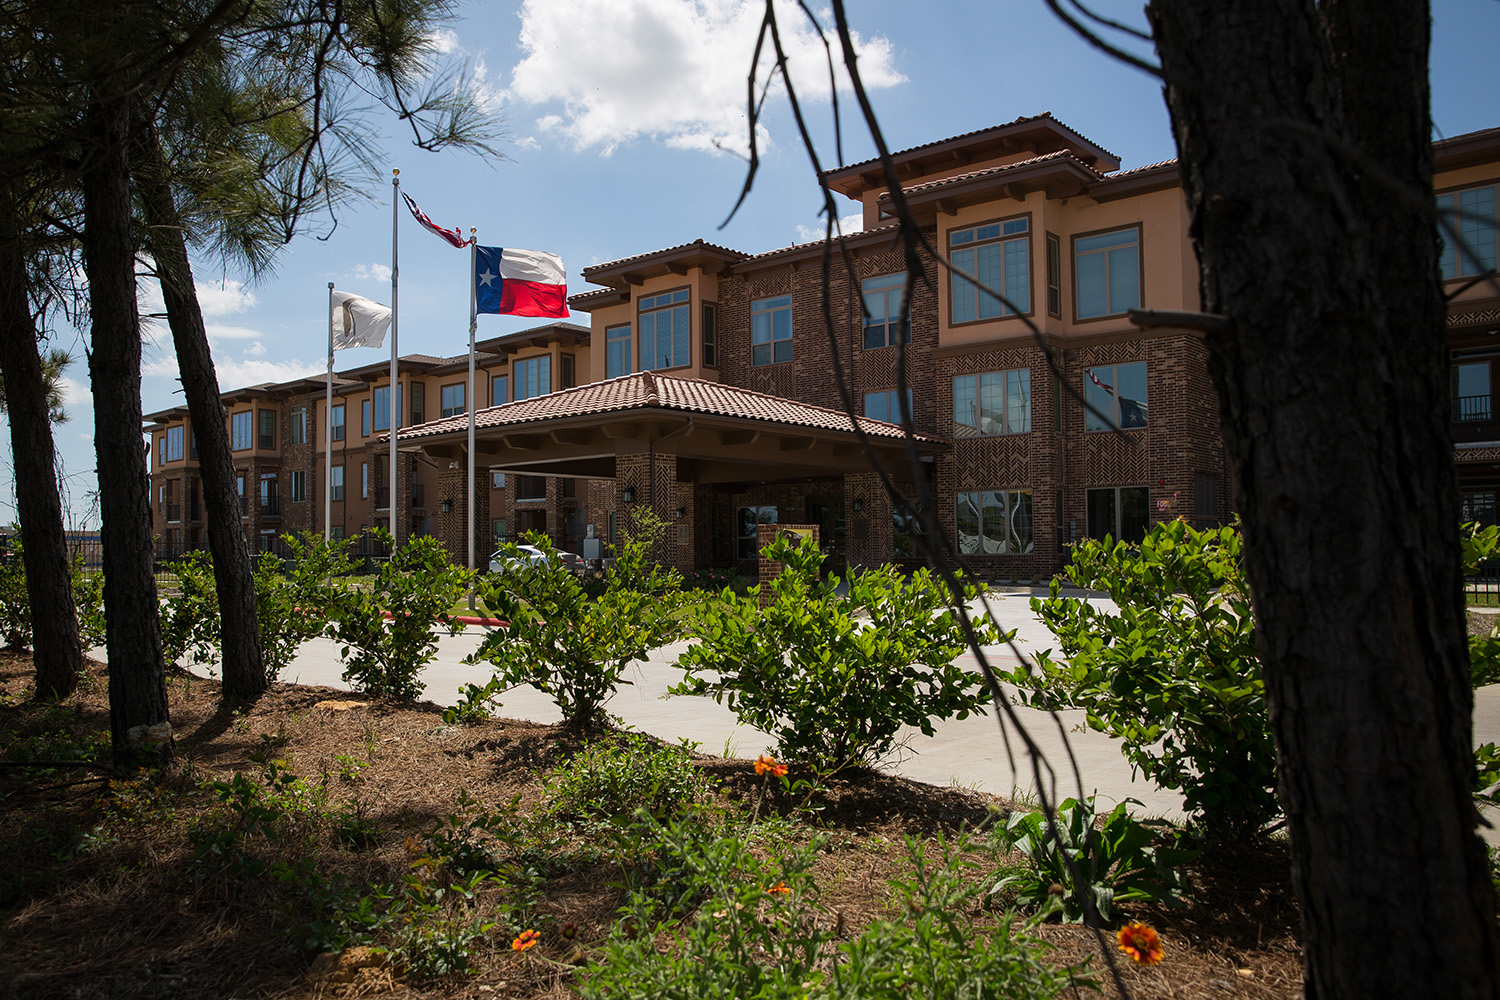 The Retreat at Westlock, an affordable housing complex for seniors built with Ike recovery funds in a wealthy Houston suburb.